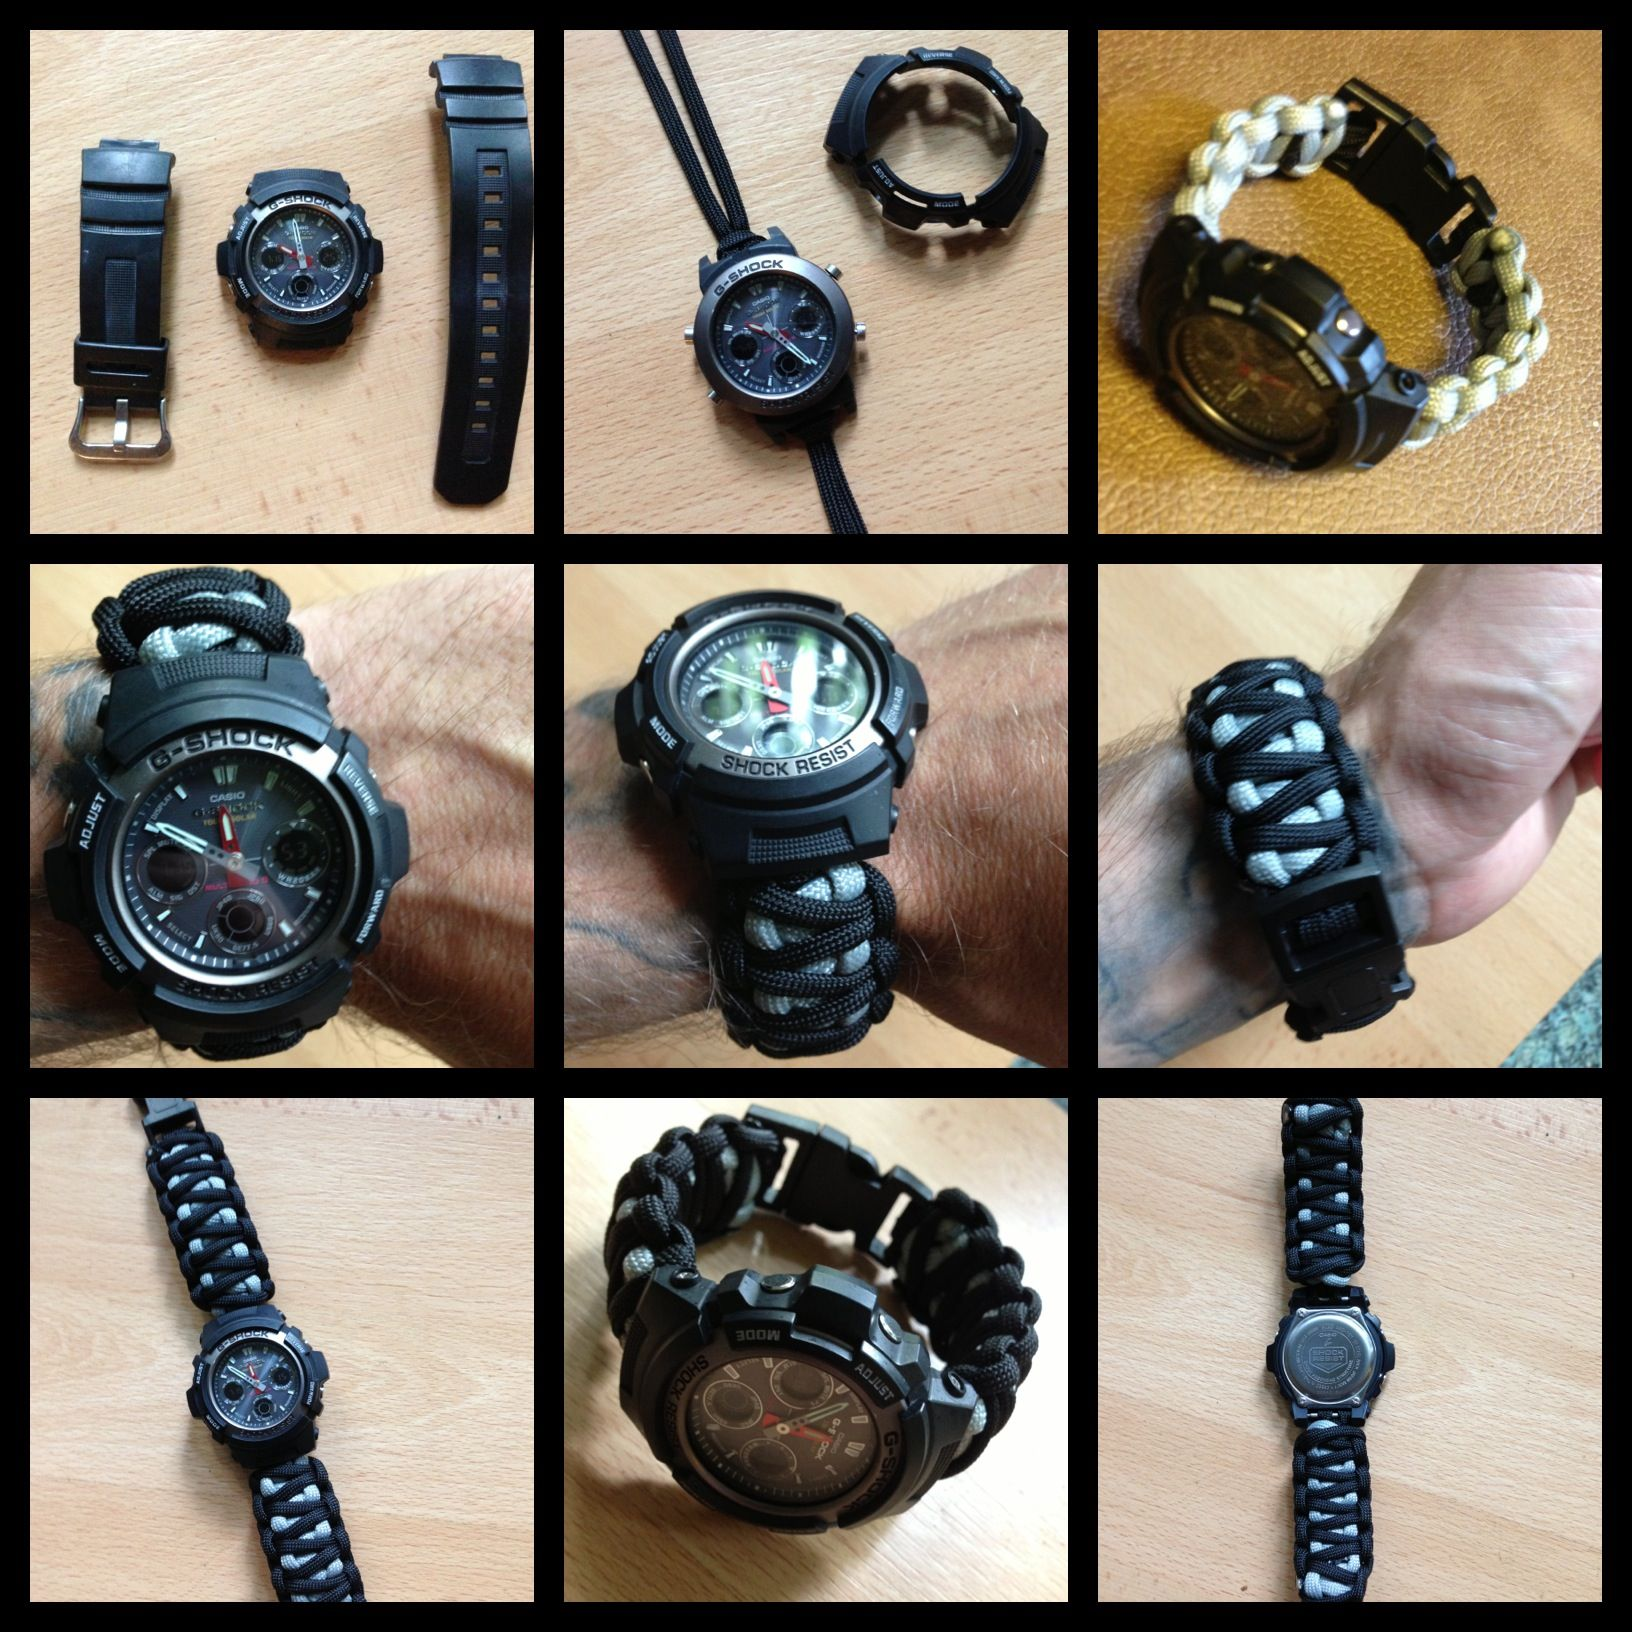 Made A Paracord Band For My G Shock Watch Paracord Watch